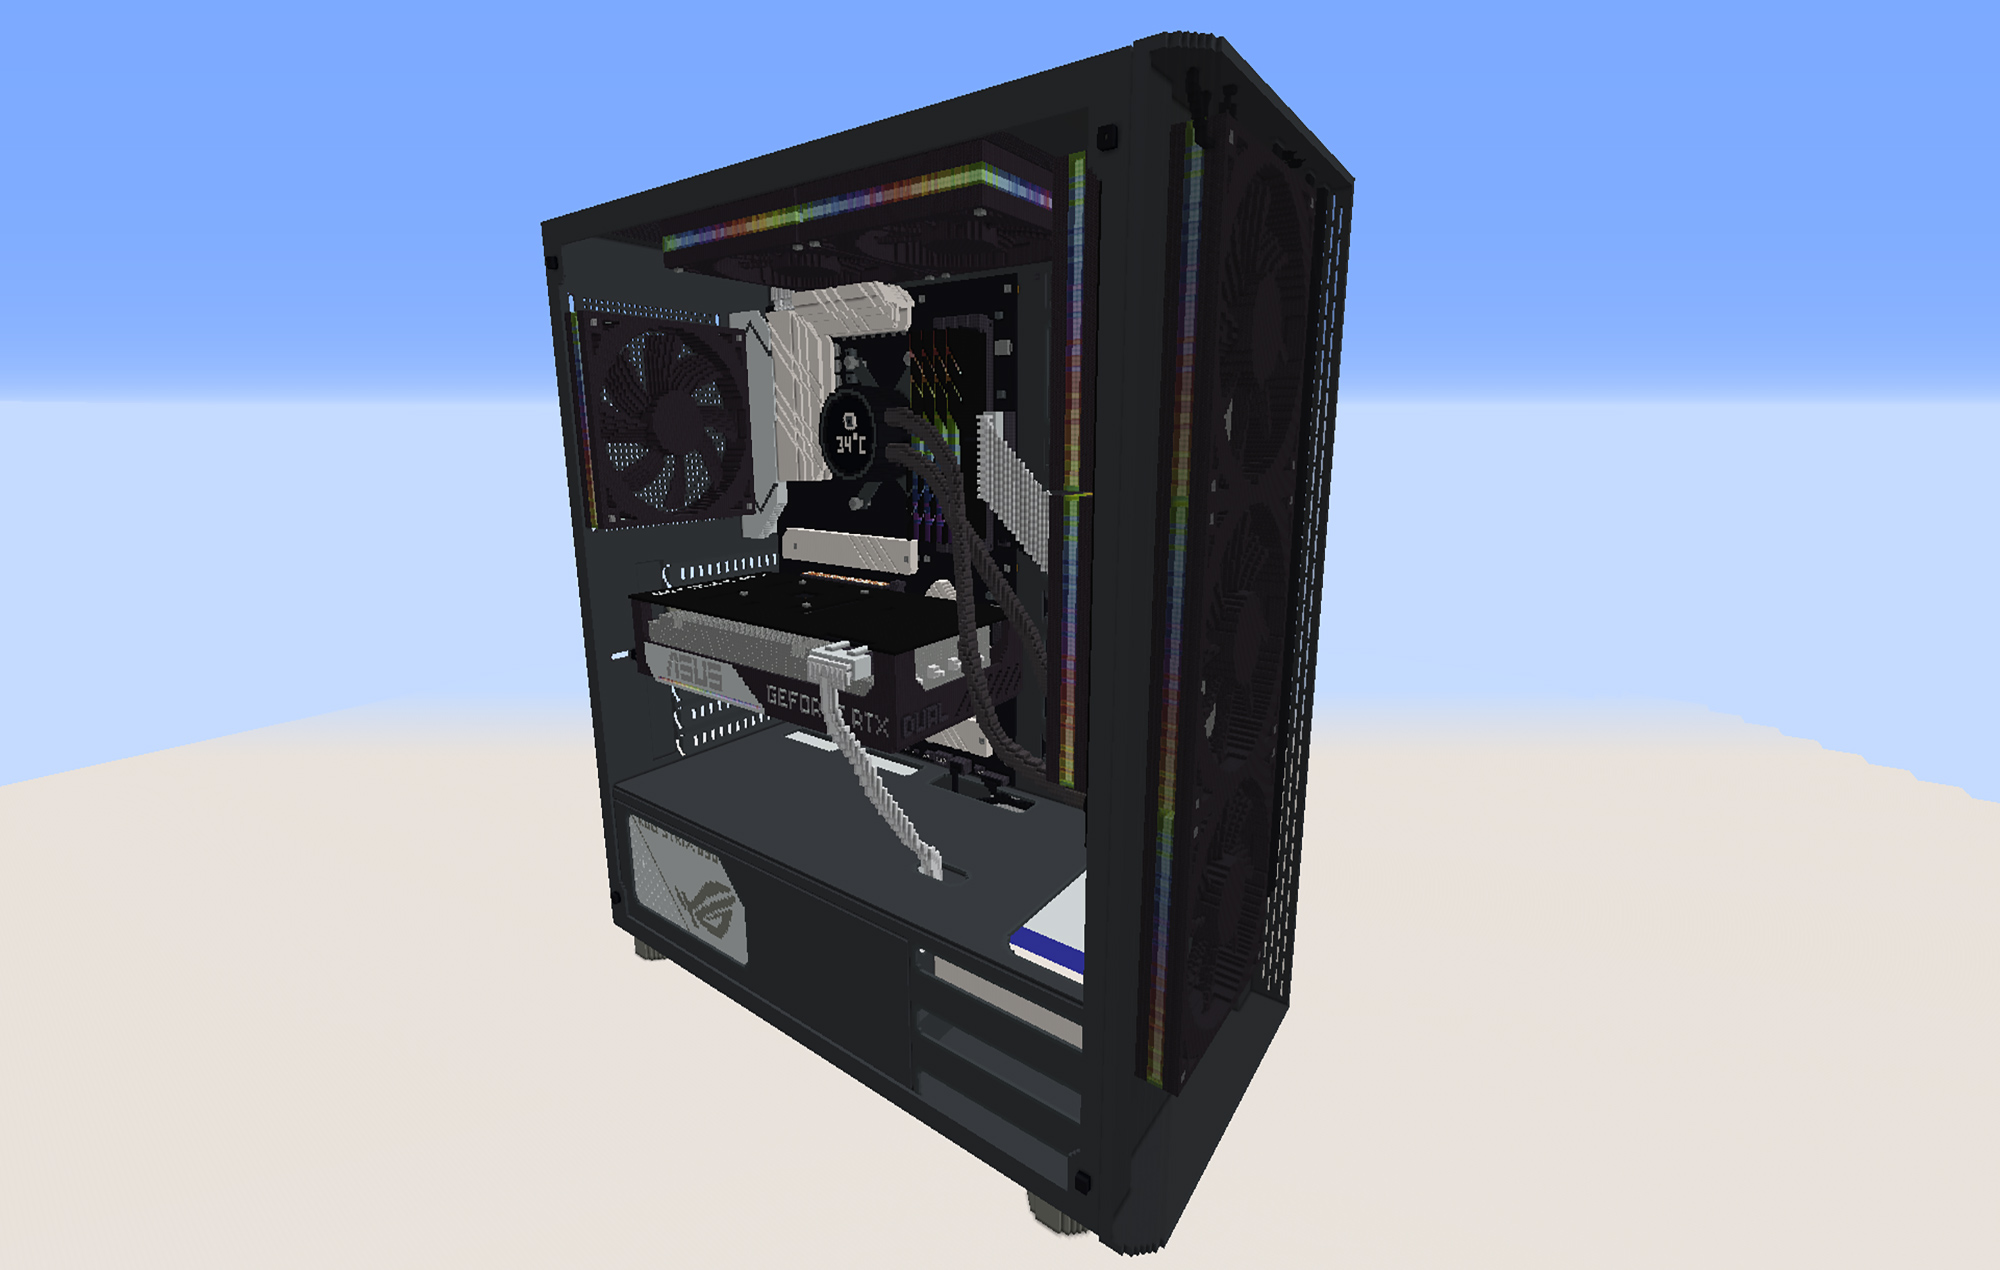 Fully scaled RTX 3070 gaming PC built in Minecraft took 45 hours